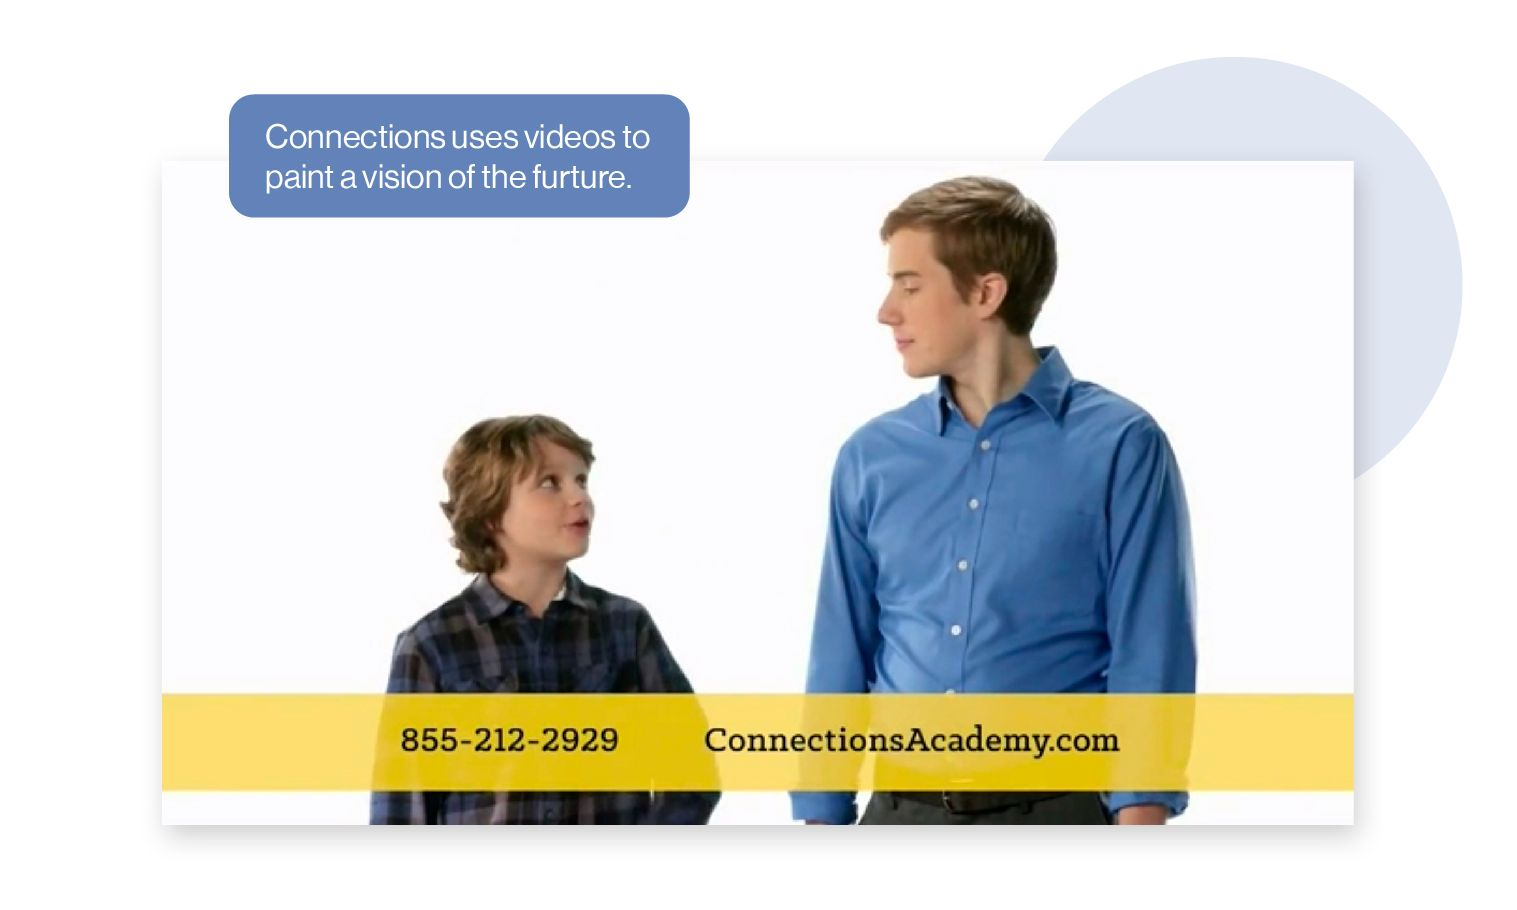 Image: Screengrab from a Connections Academy video ad showing a young boy looking at a future version of himself. Connections uses videos to paint a vision of the future for prospective students and their families.